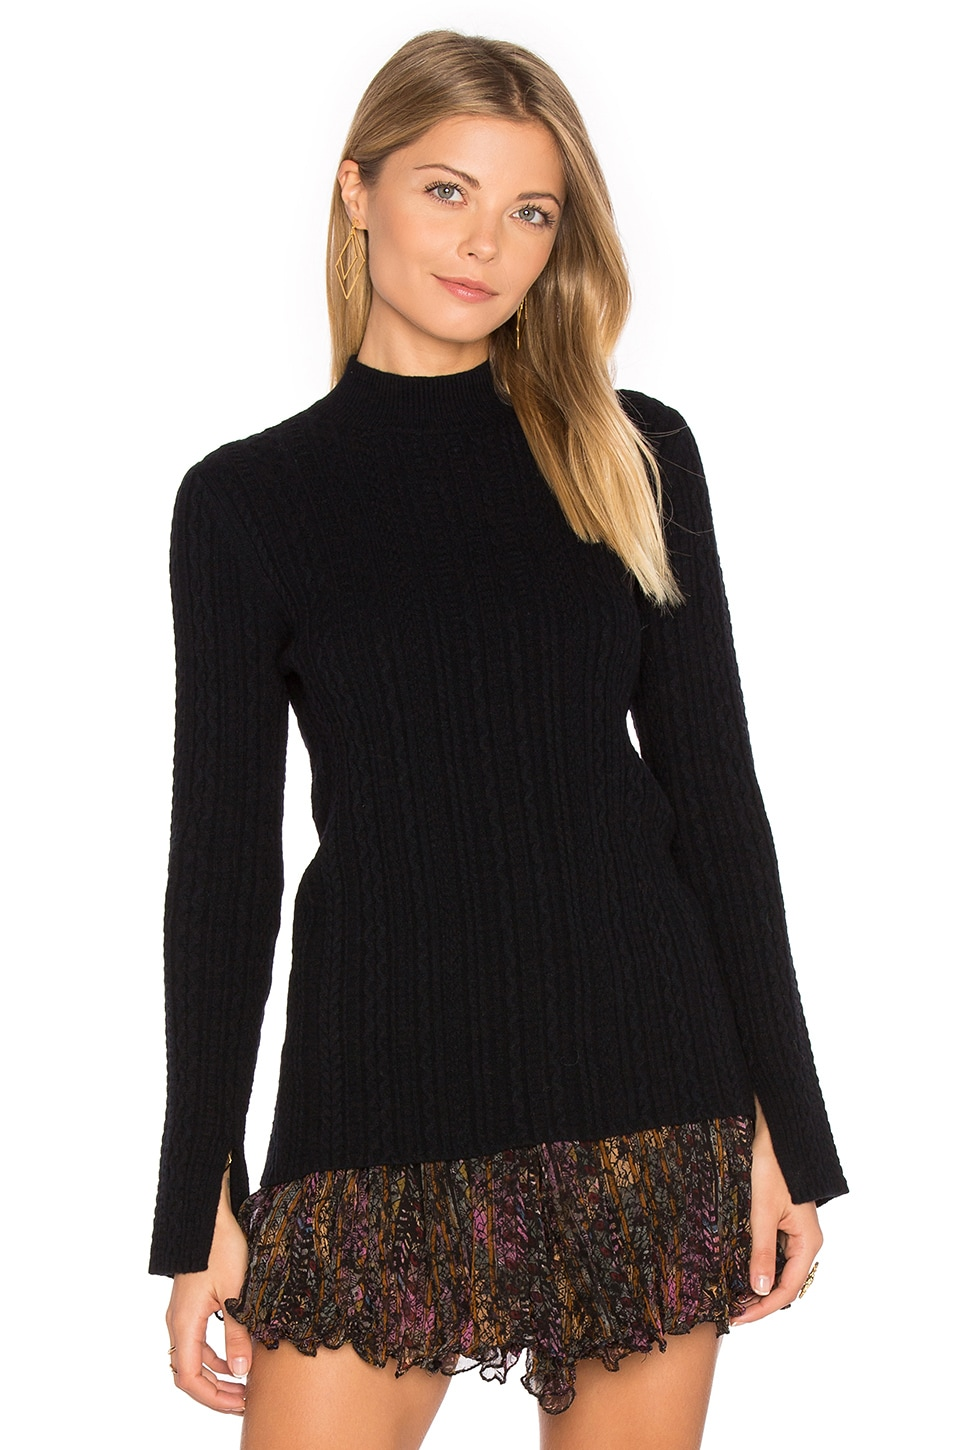 Friselle Sweater by Theory